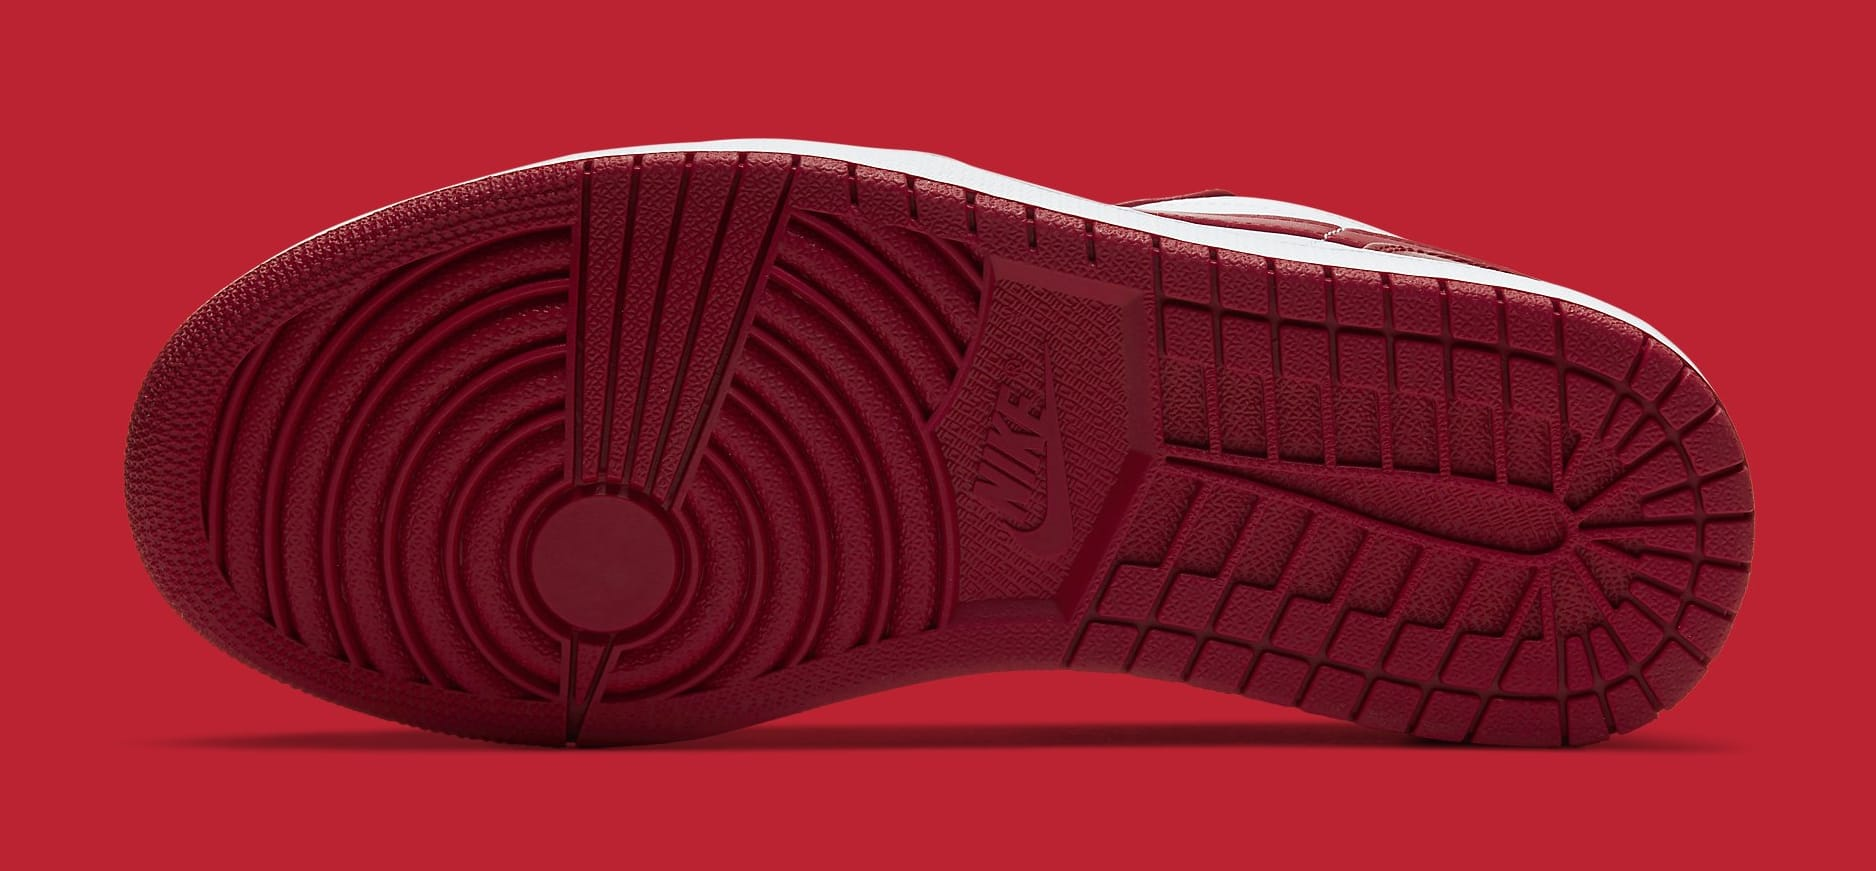 air-jordan-1-low-gym-red-553558-611-outsole